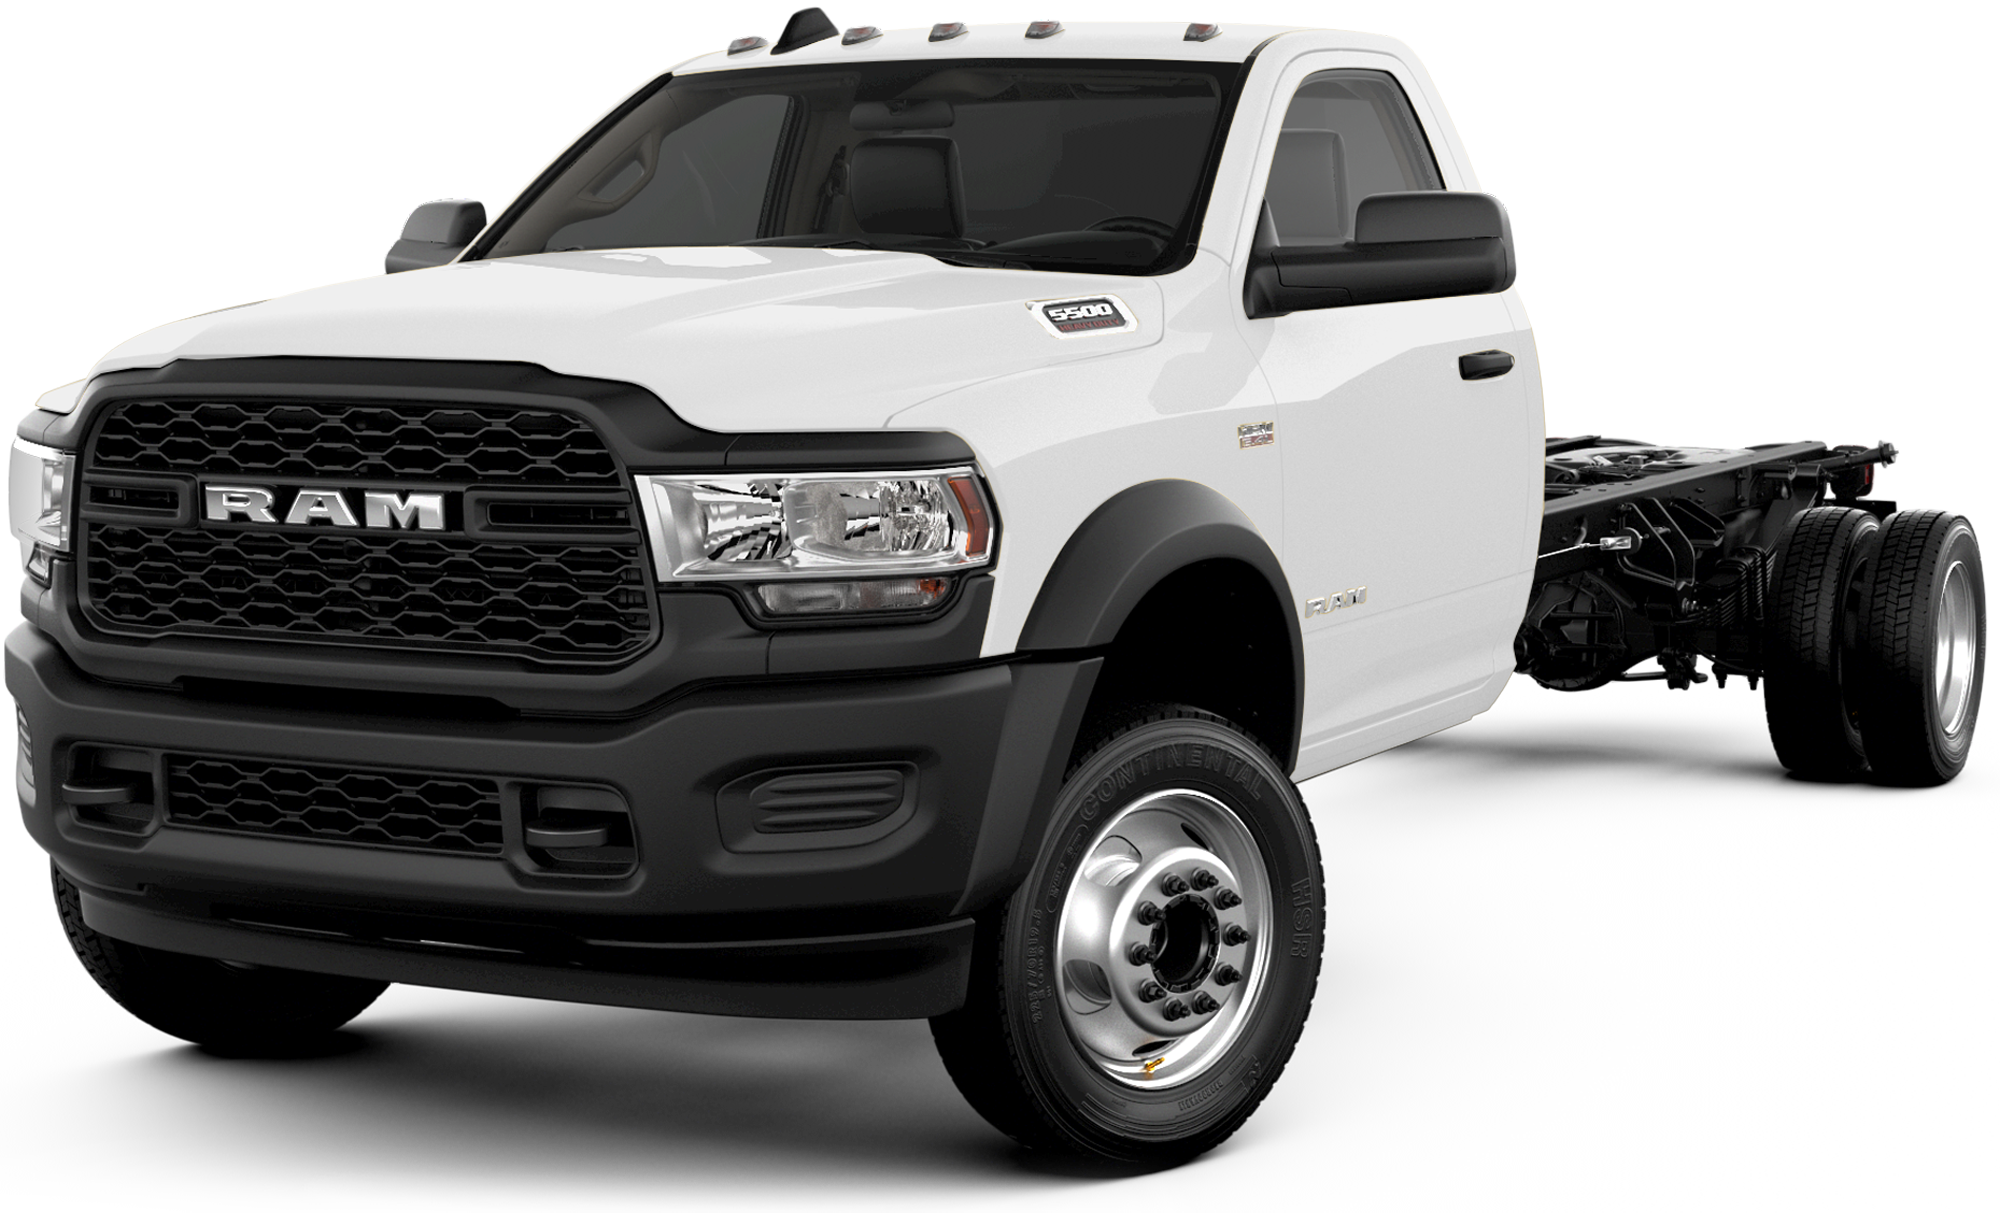 dodge truck incentives 2021 Ram 5500 Chassis Incentives, Specials & Offers in